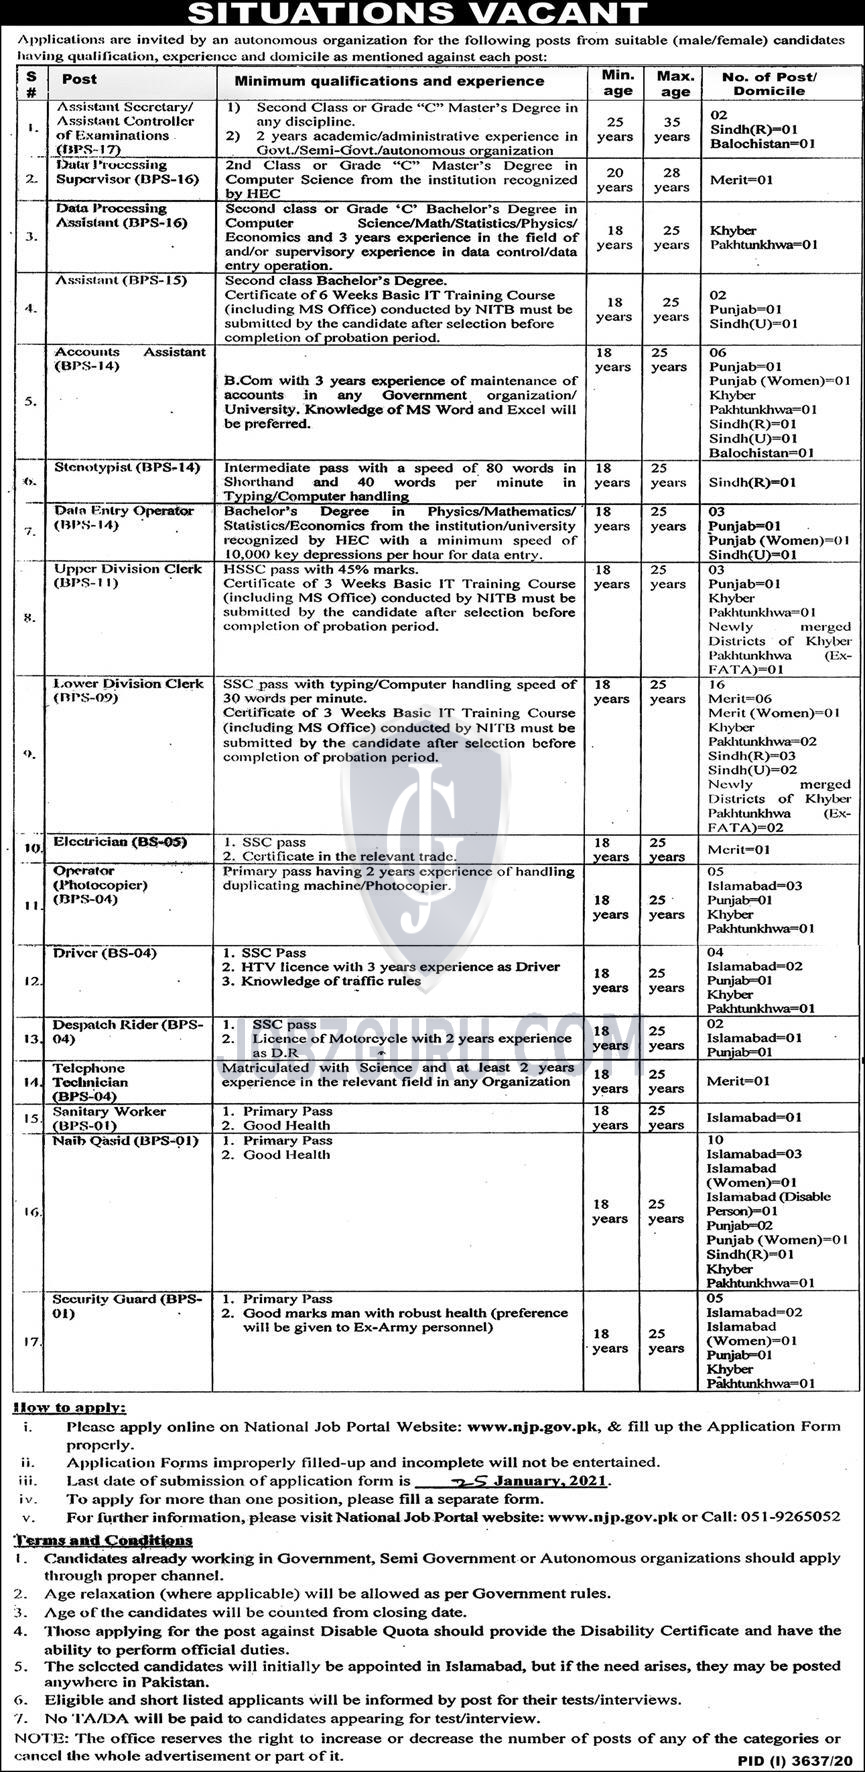 Telephone Operator in Islamabad on January, 2021 | Federal Government